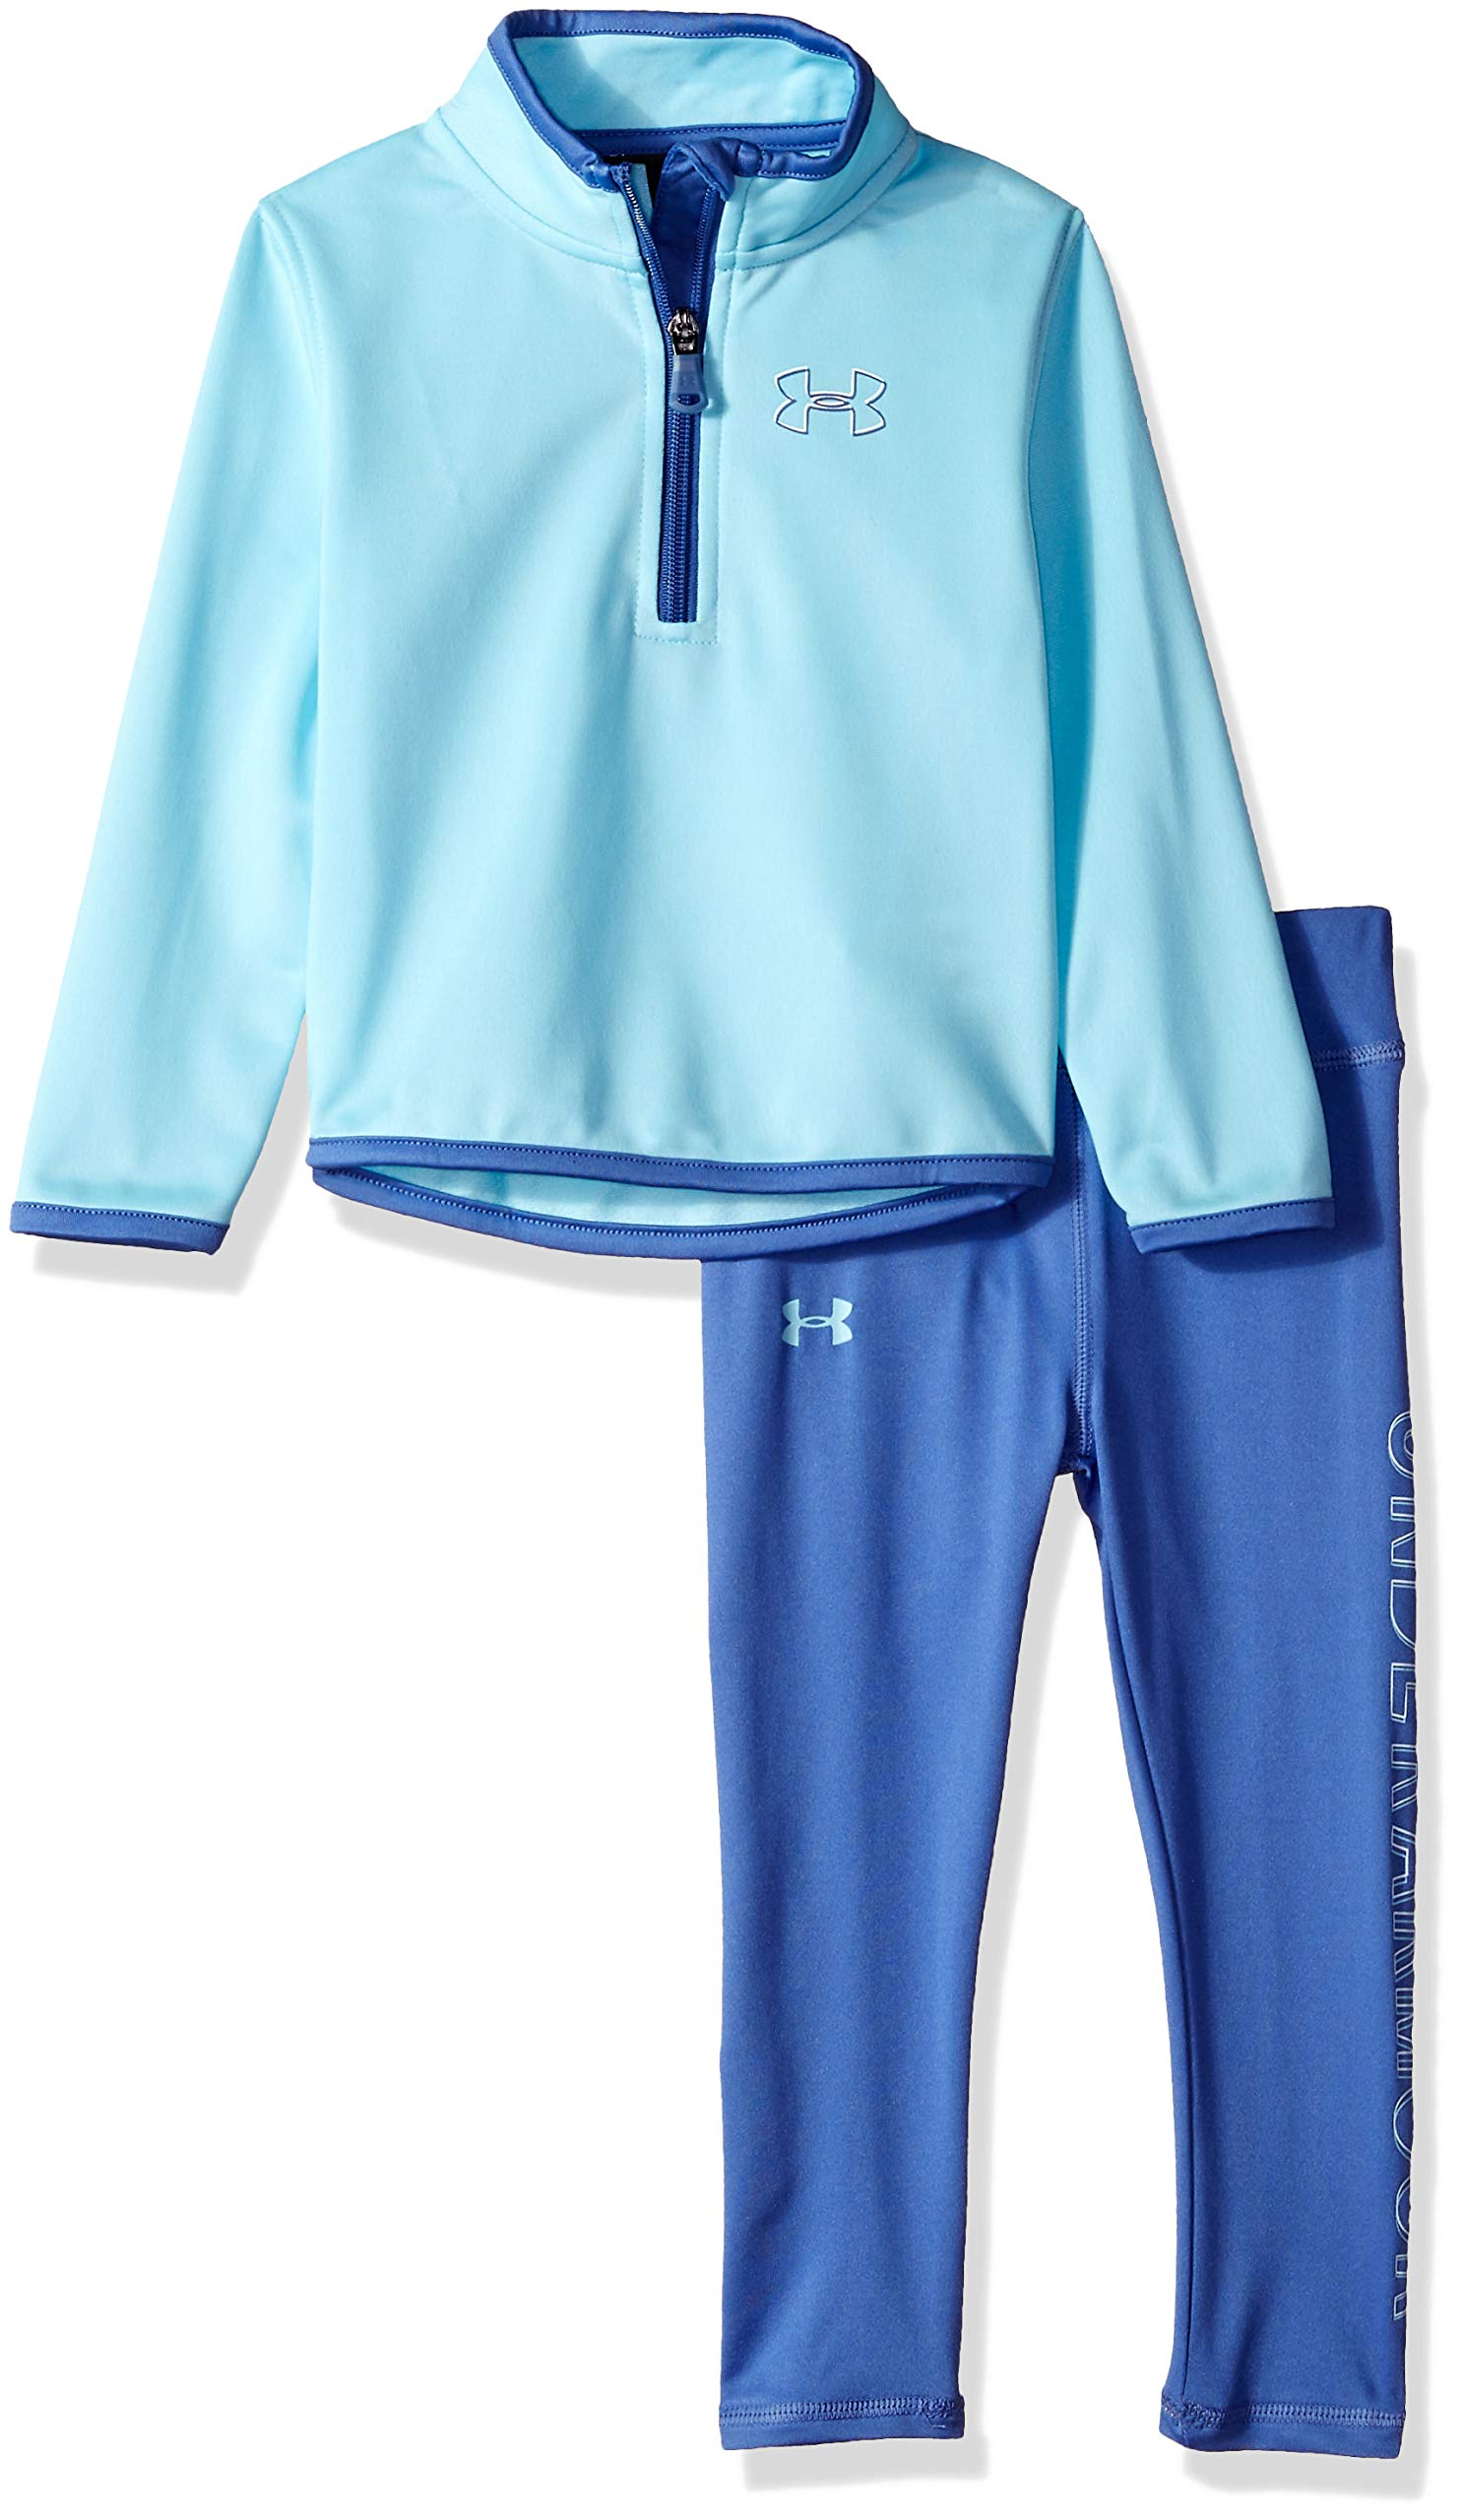 Under Armour Girls' Toddler Track Jacket and Pant Set, Venetian Blue Teamster, 2T by Under Armour